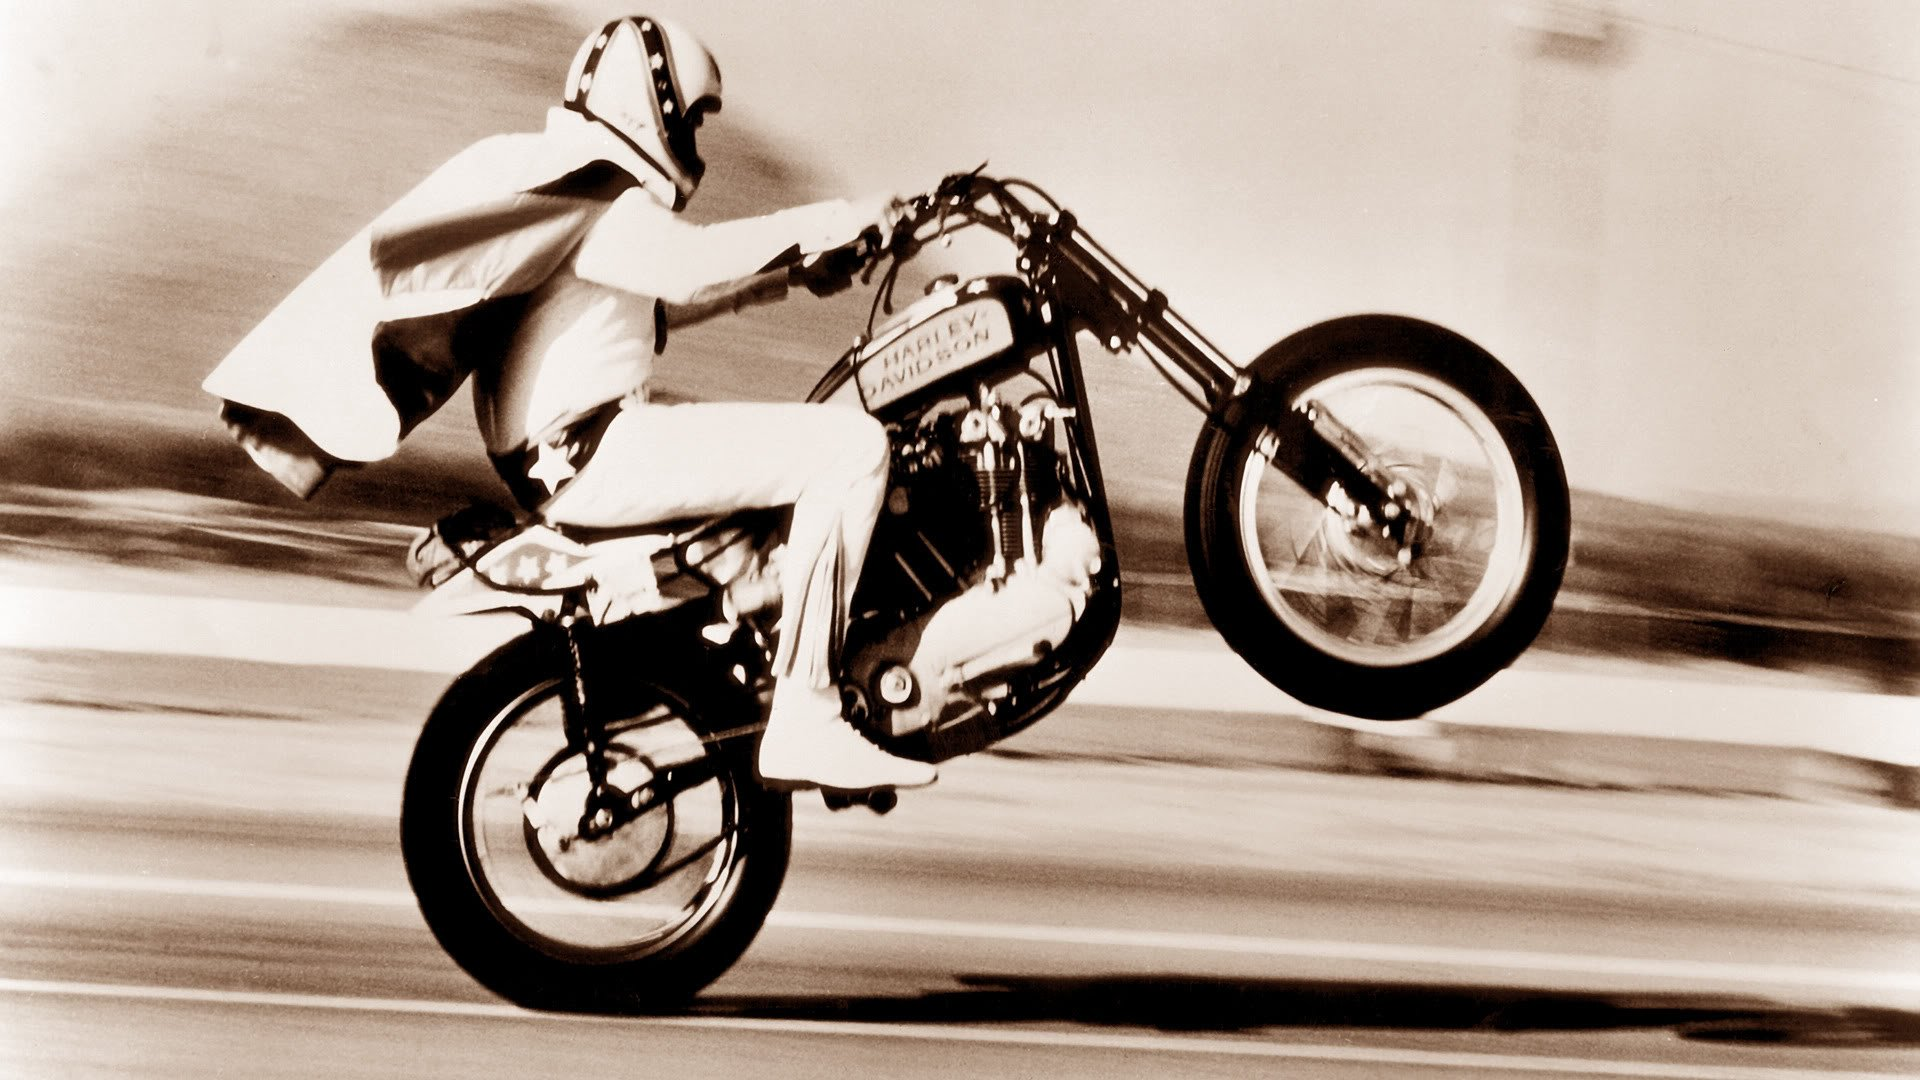 1920x1080 - Evel Knievel Wallpapers 1